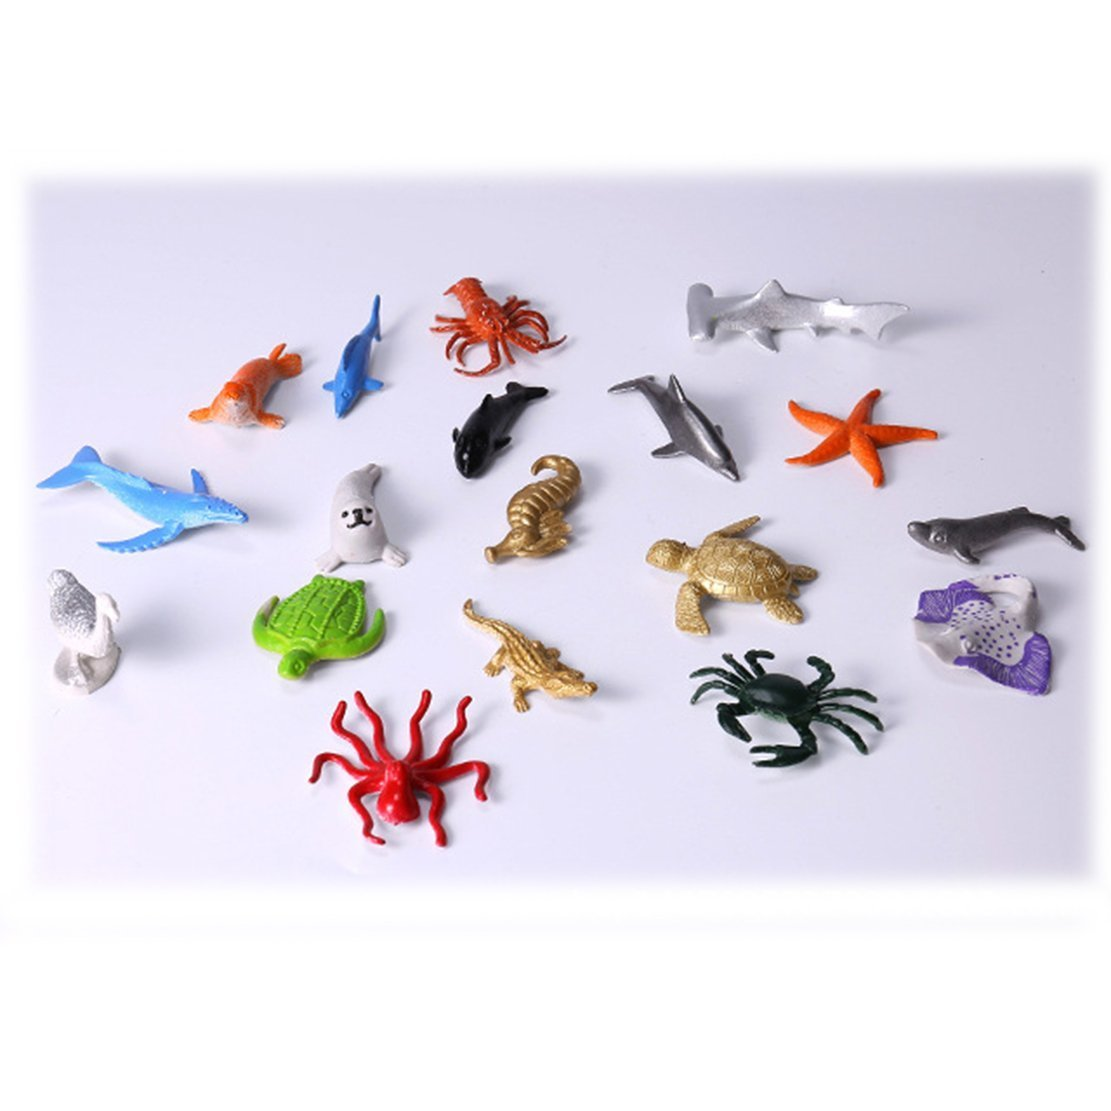 DLOnline 87PCS Animals Figure and Ocean Sea Animal,Realistic Wild Plastic Animal Playset